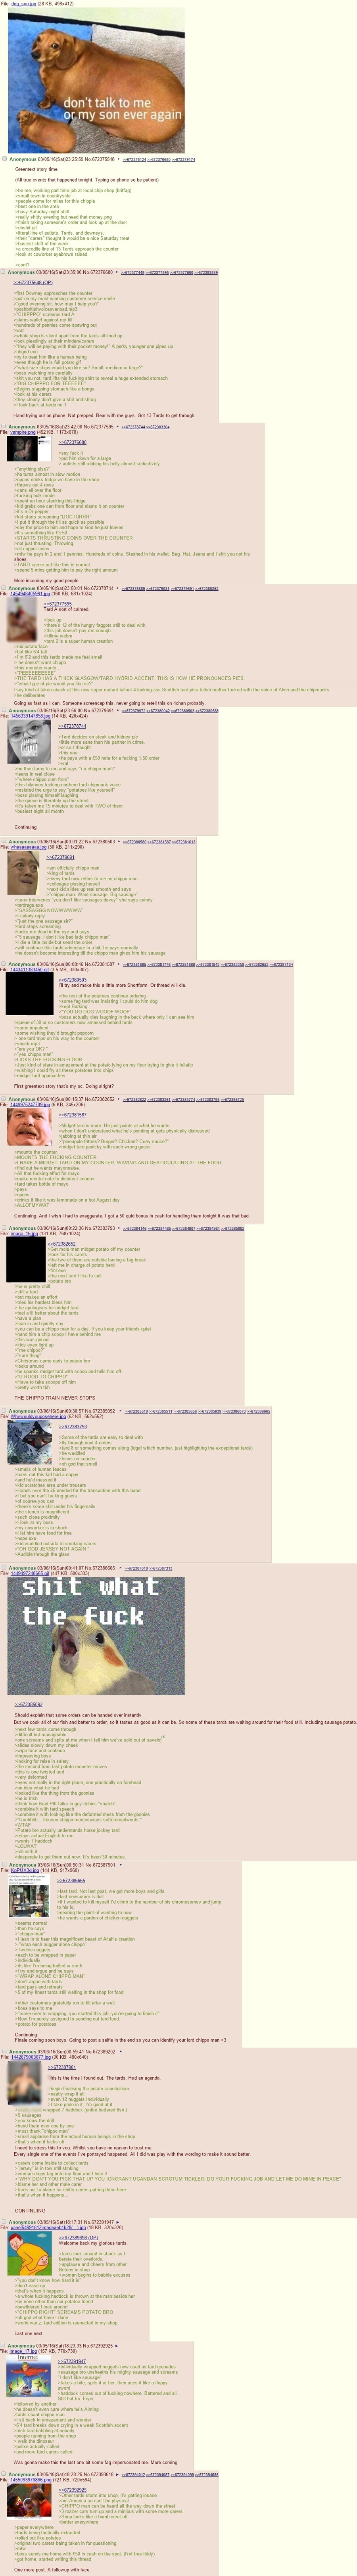 The Legend of Chippo. join list: Chanoholic (319 subs)Mention History.. Holy this is one of my favorite greentexts of all time. Brendaniel did a reading as well